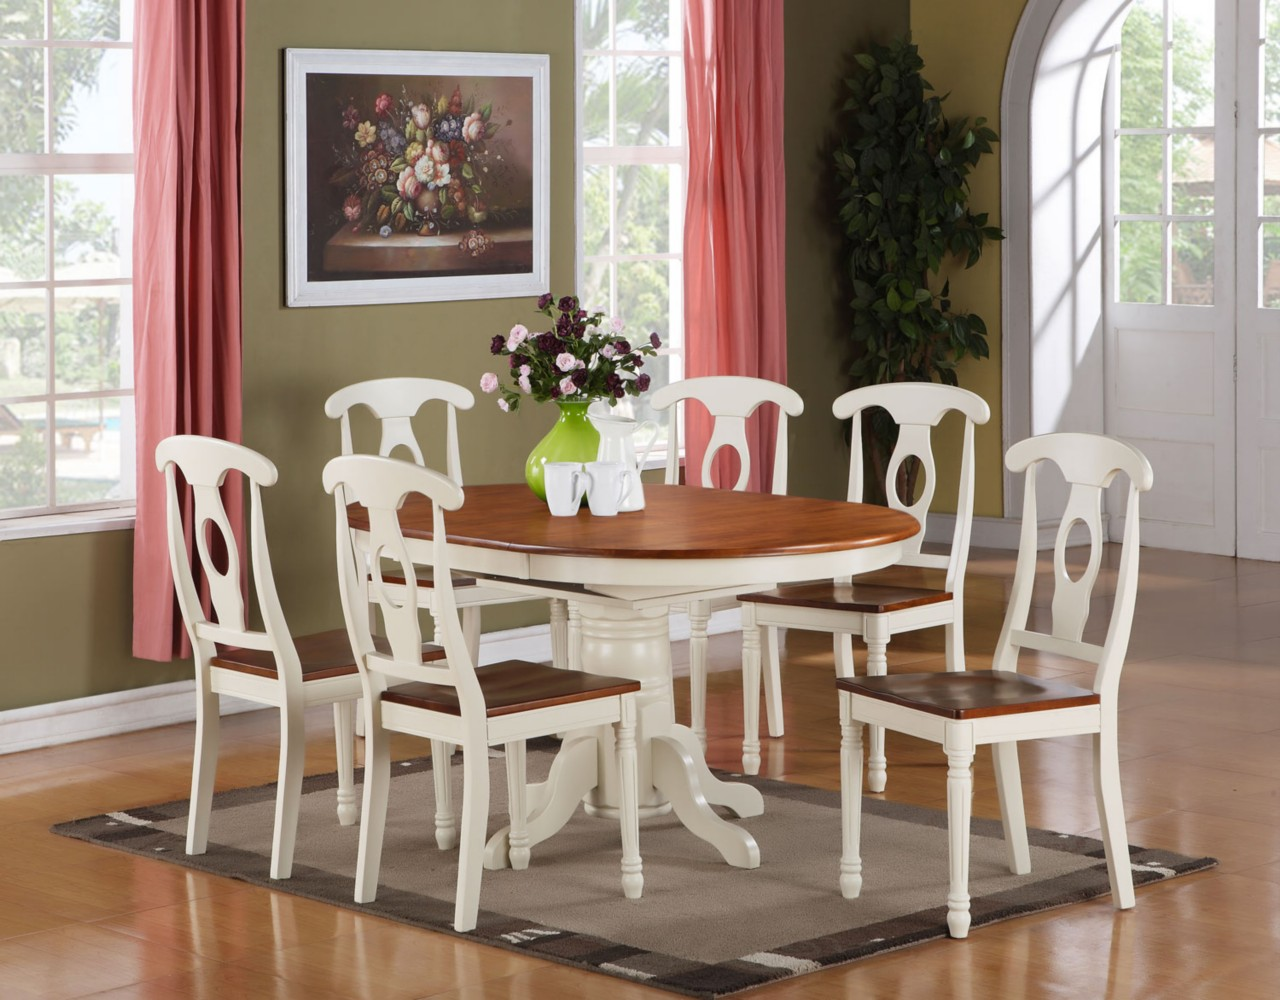 7 pc kenley oval dinette dining room set table with 6 chairs in buttermilk brown ebay. Black Bedroom Furniture Sets. Home Design Ideas